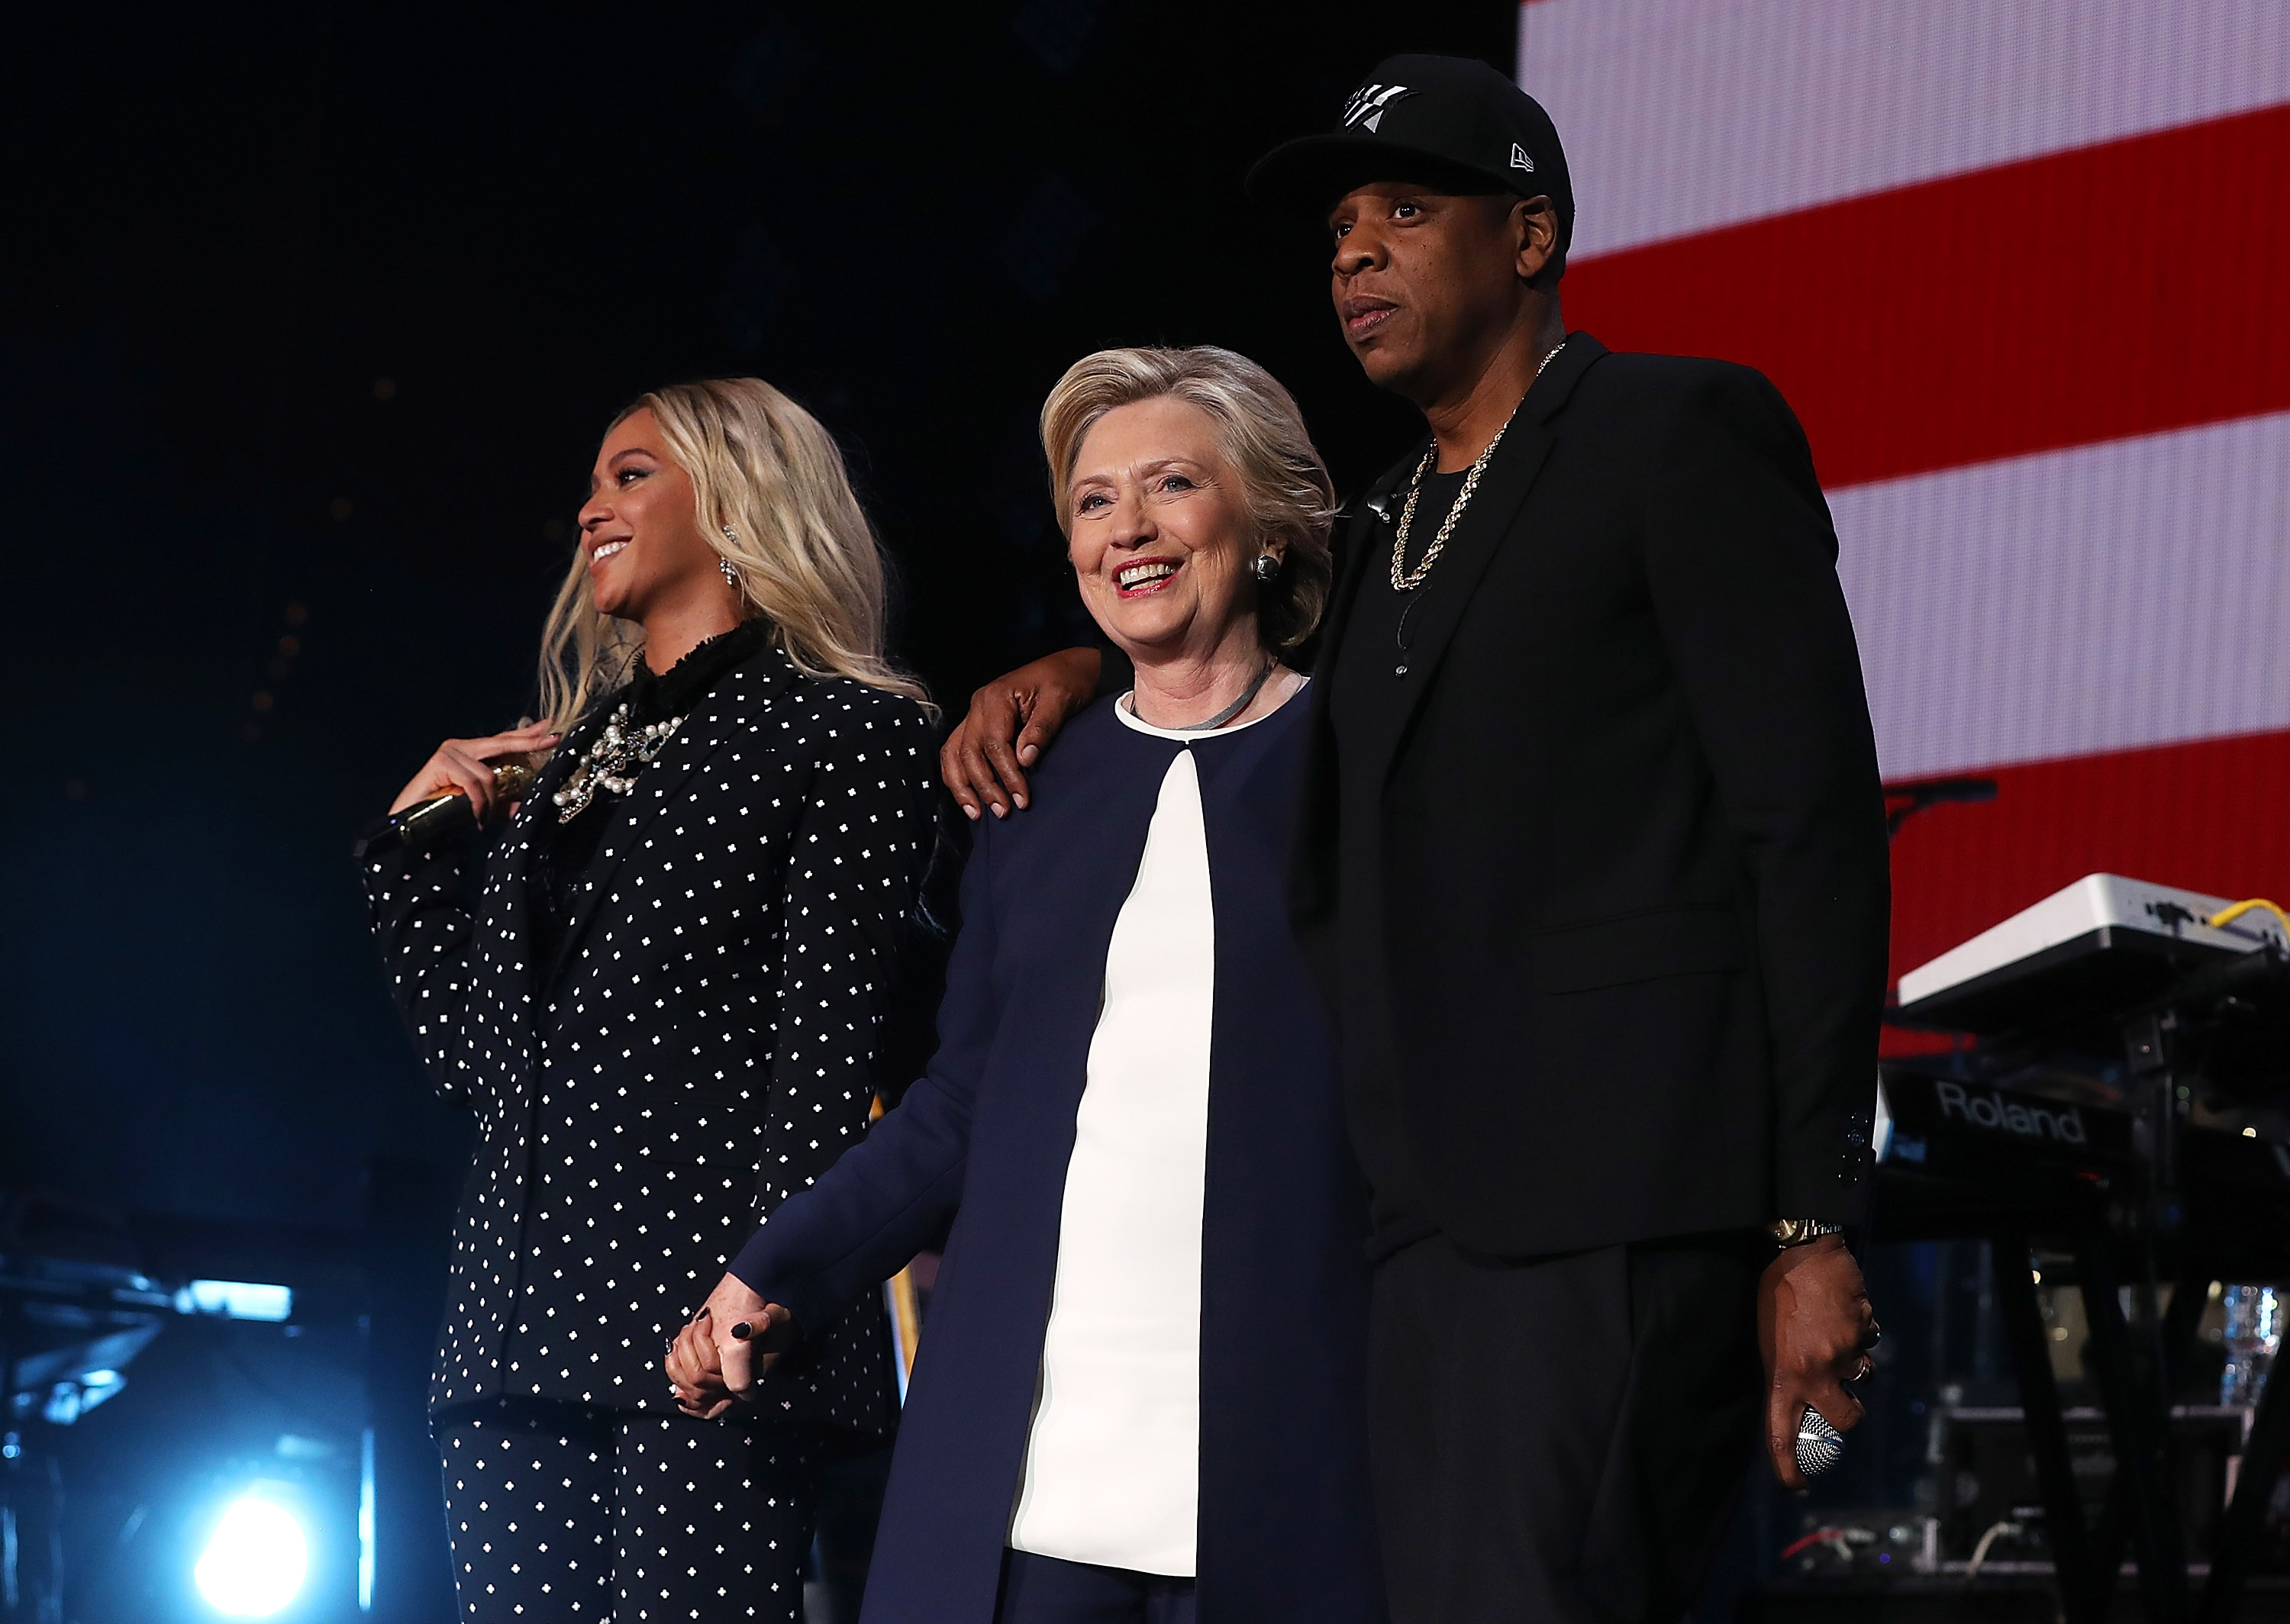 WATCH: Beyonce, Jay Z and Chance The Rapper perform at a Hillary Clinton rally